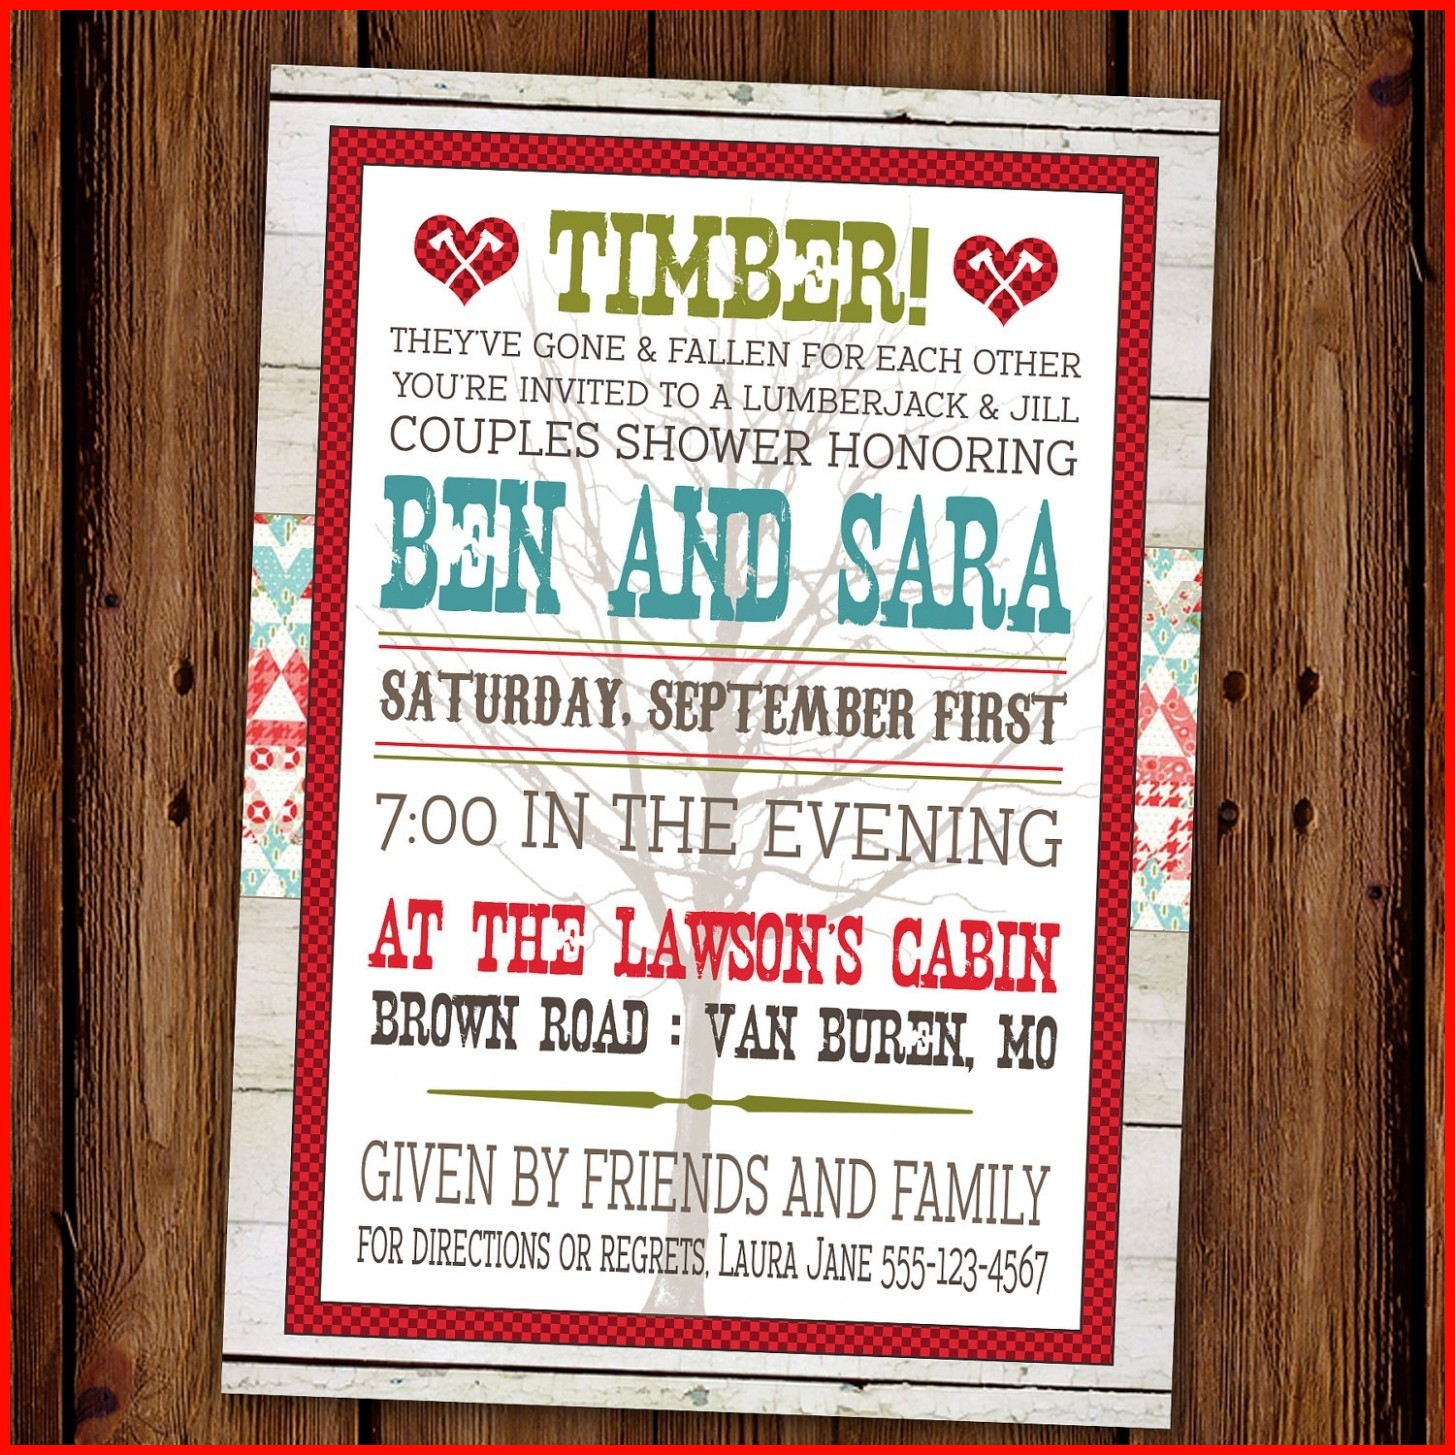 Redneck Party Invitation Templates 100410 Redneck Party Invitation Templates Top Collection Redneck With